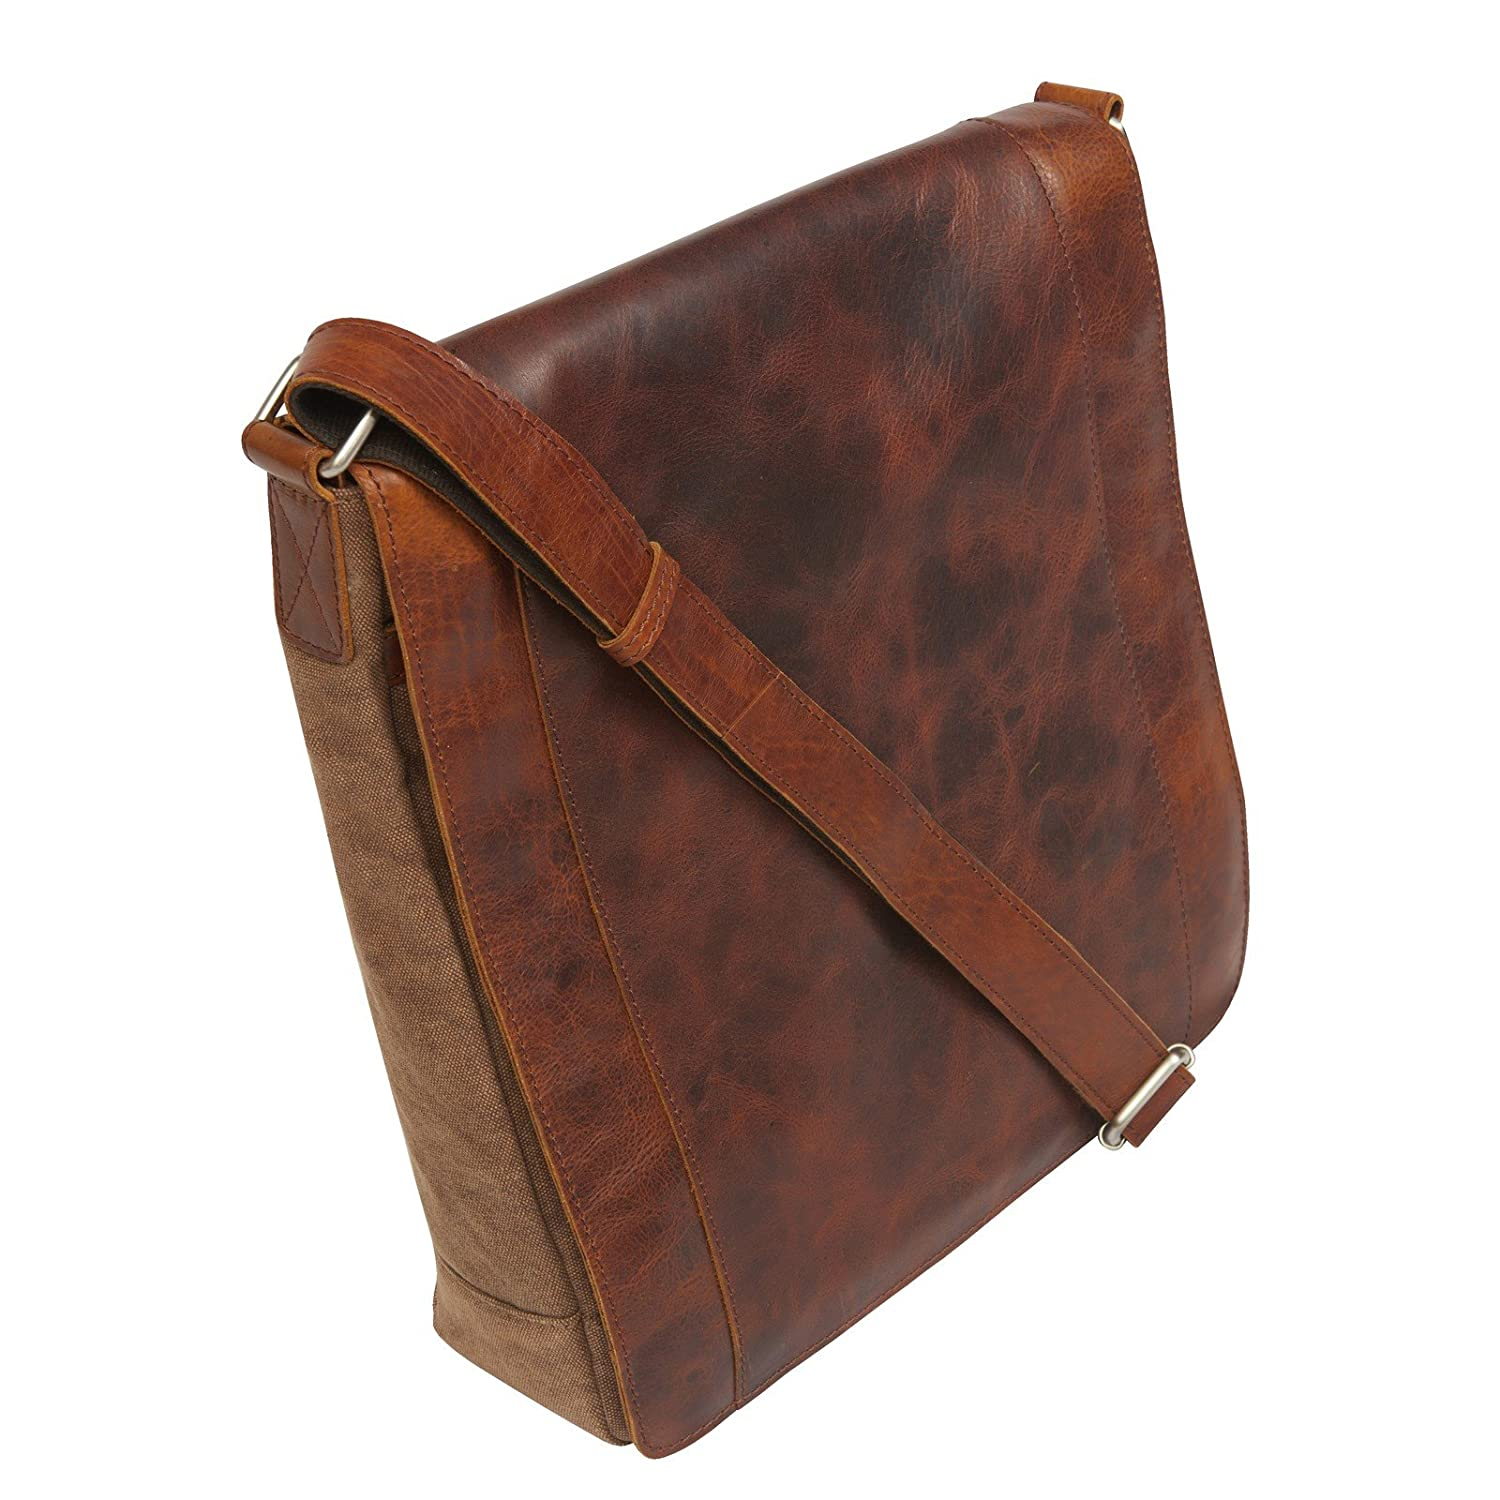 Canyon Outback Leather CY146 Ringtail Canyon Leather and Canvas Messenger Bag, Brown B00FV0YR8K